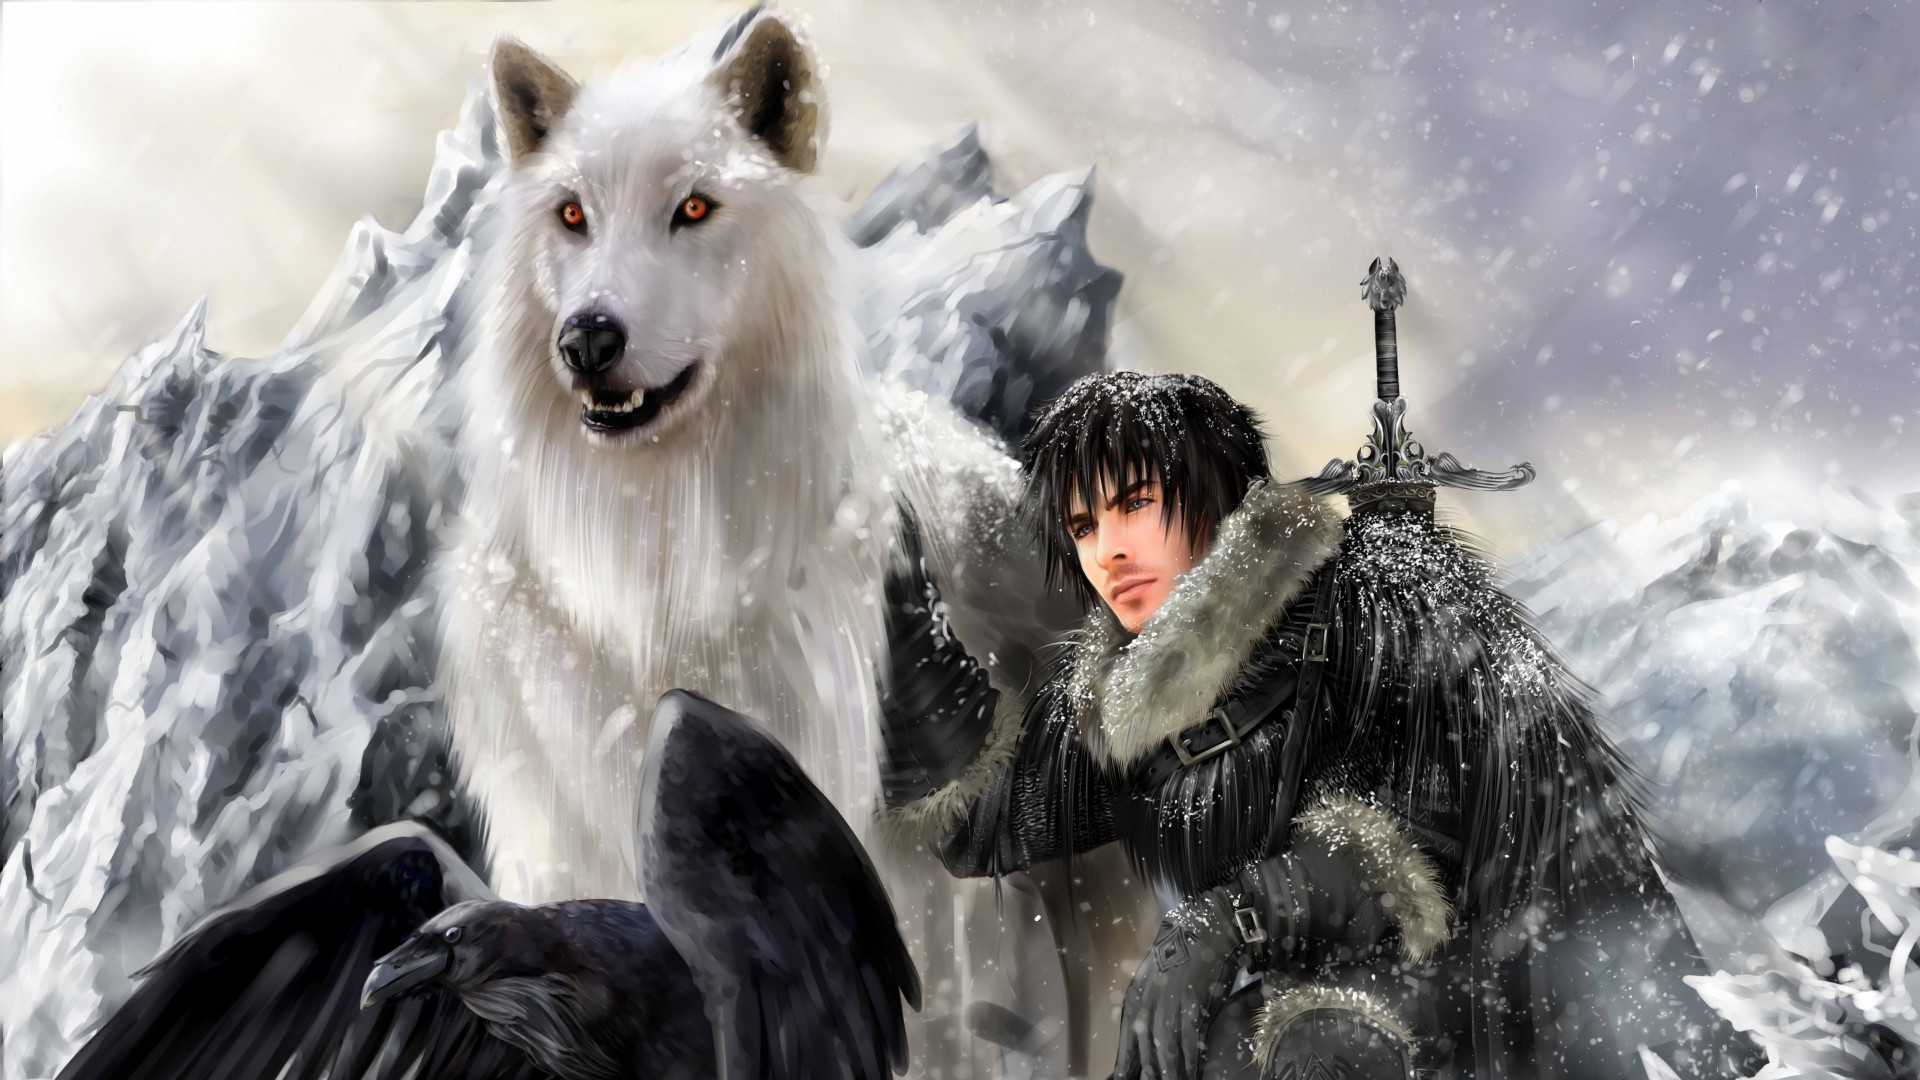 Wallpaper The Song Of Ice And Fire, Game Of Thrones, - Game Of Thrones - HD Wallpaper